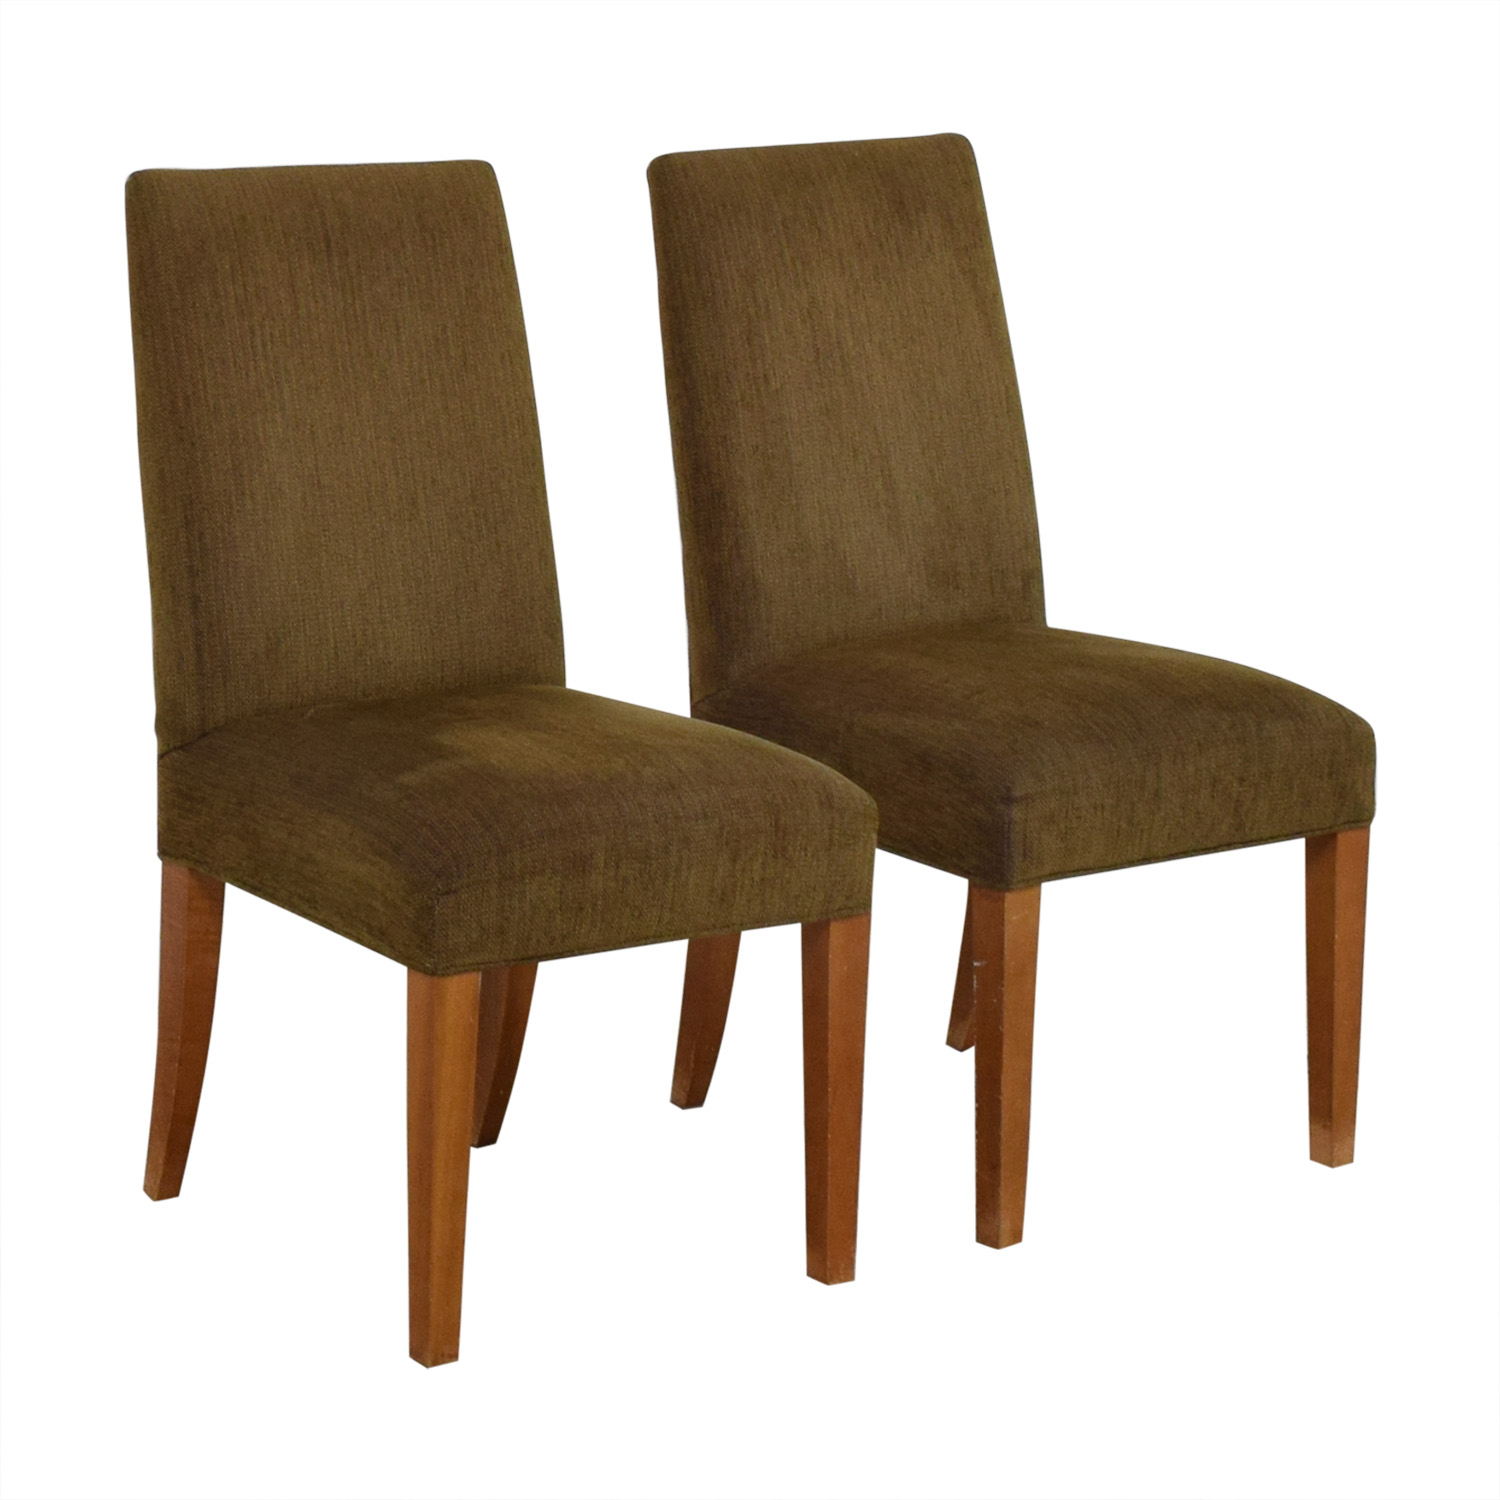 McCreary Modern Ava Dining Chairs / Chairs